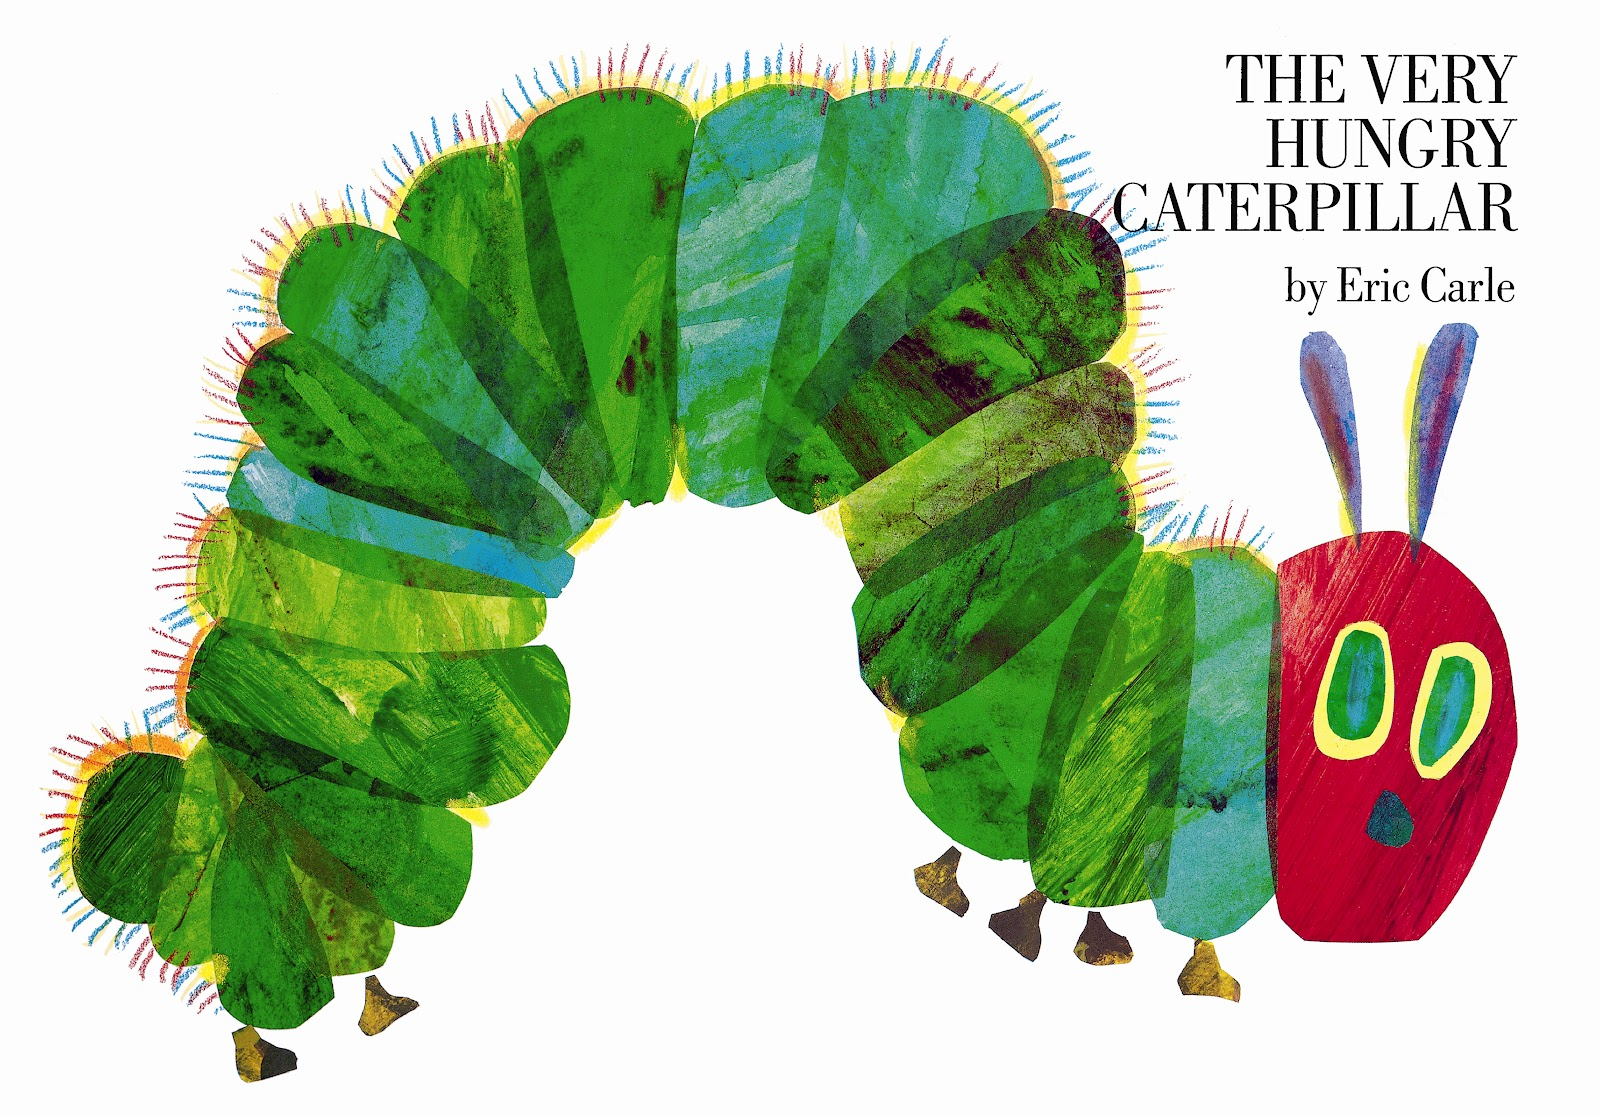 Very-Hungry-Caterpillar-Book-Cover.jpg